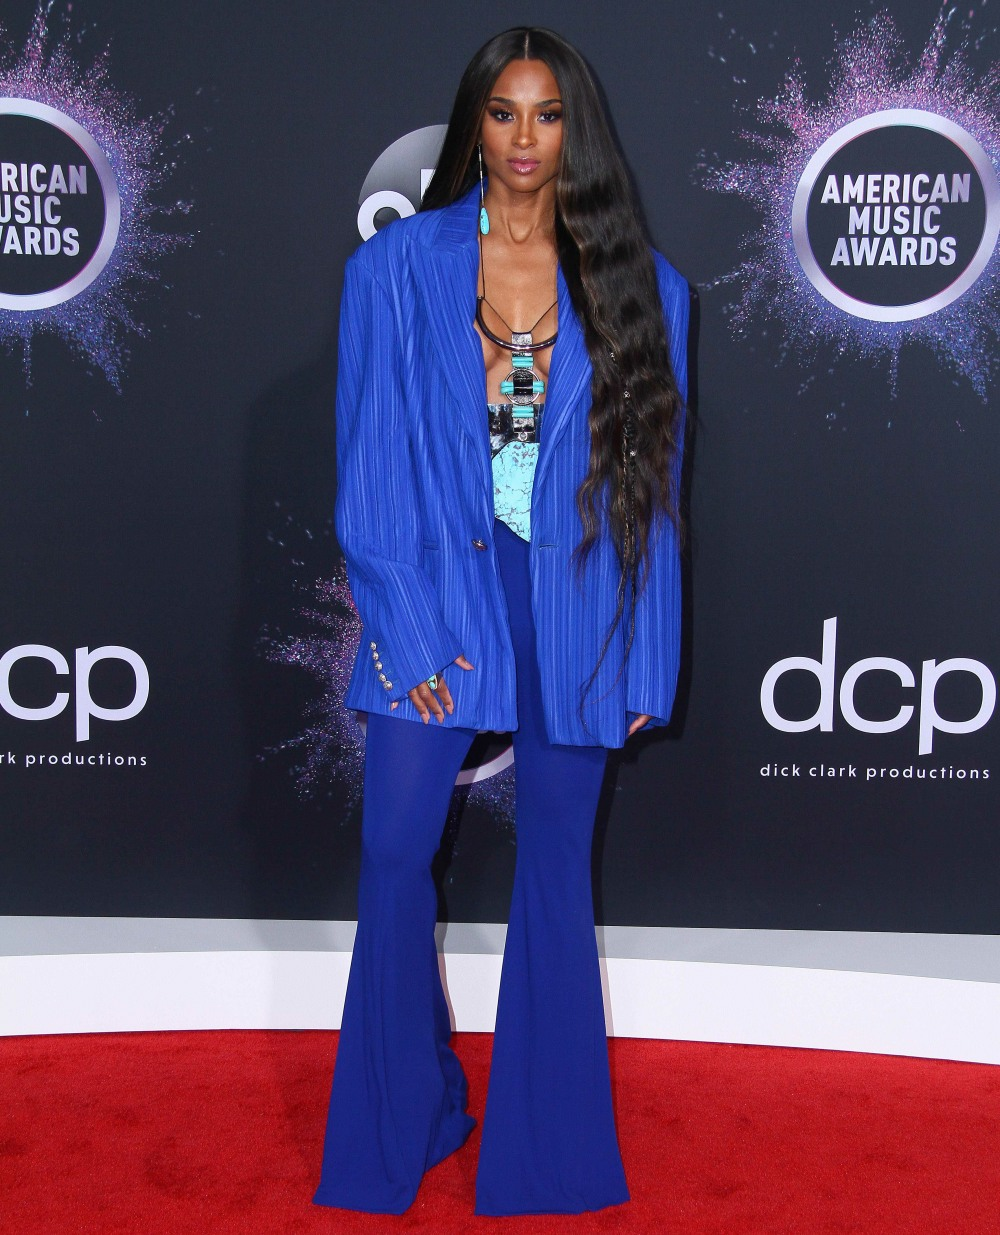 Ciara attends the 2019 American Music Awards - Red Carpet in Los Angeles